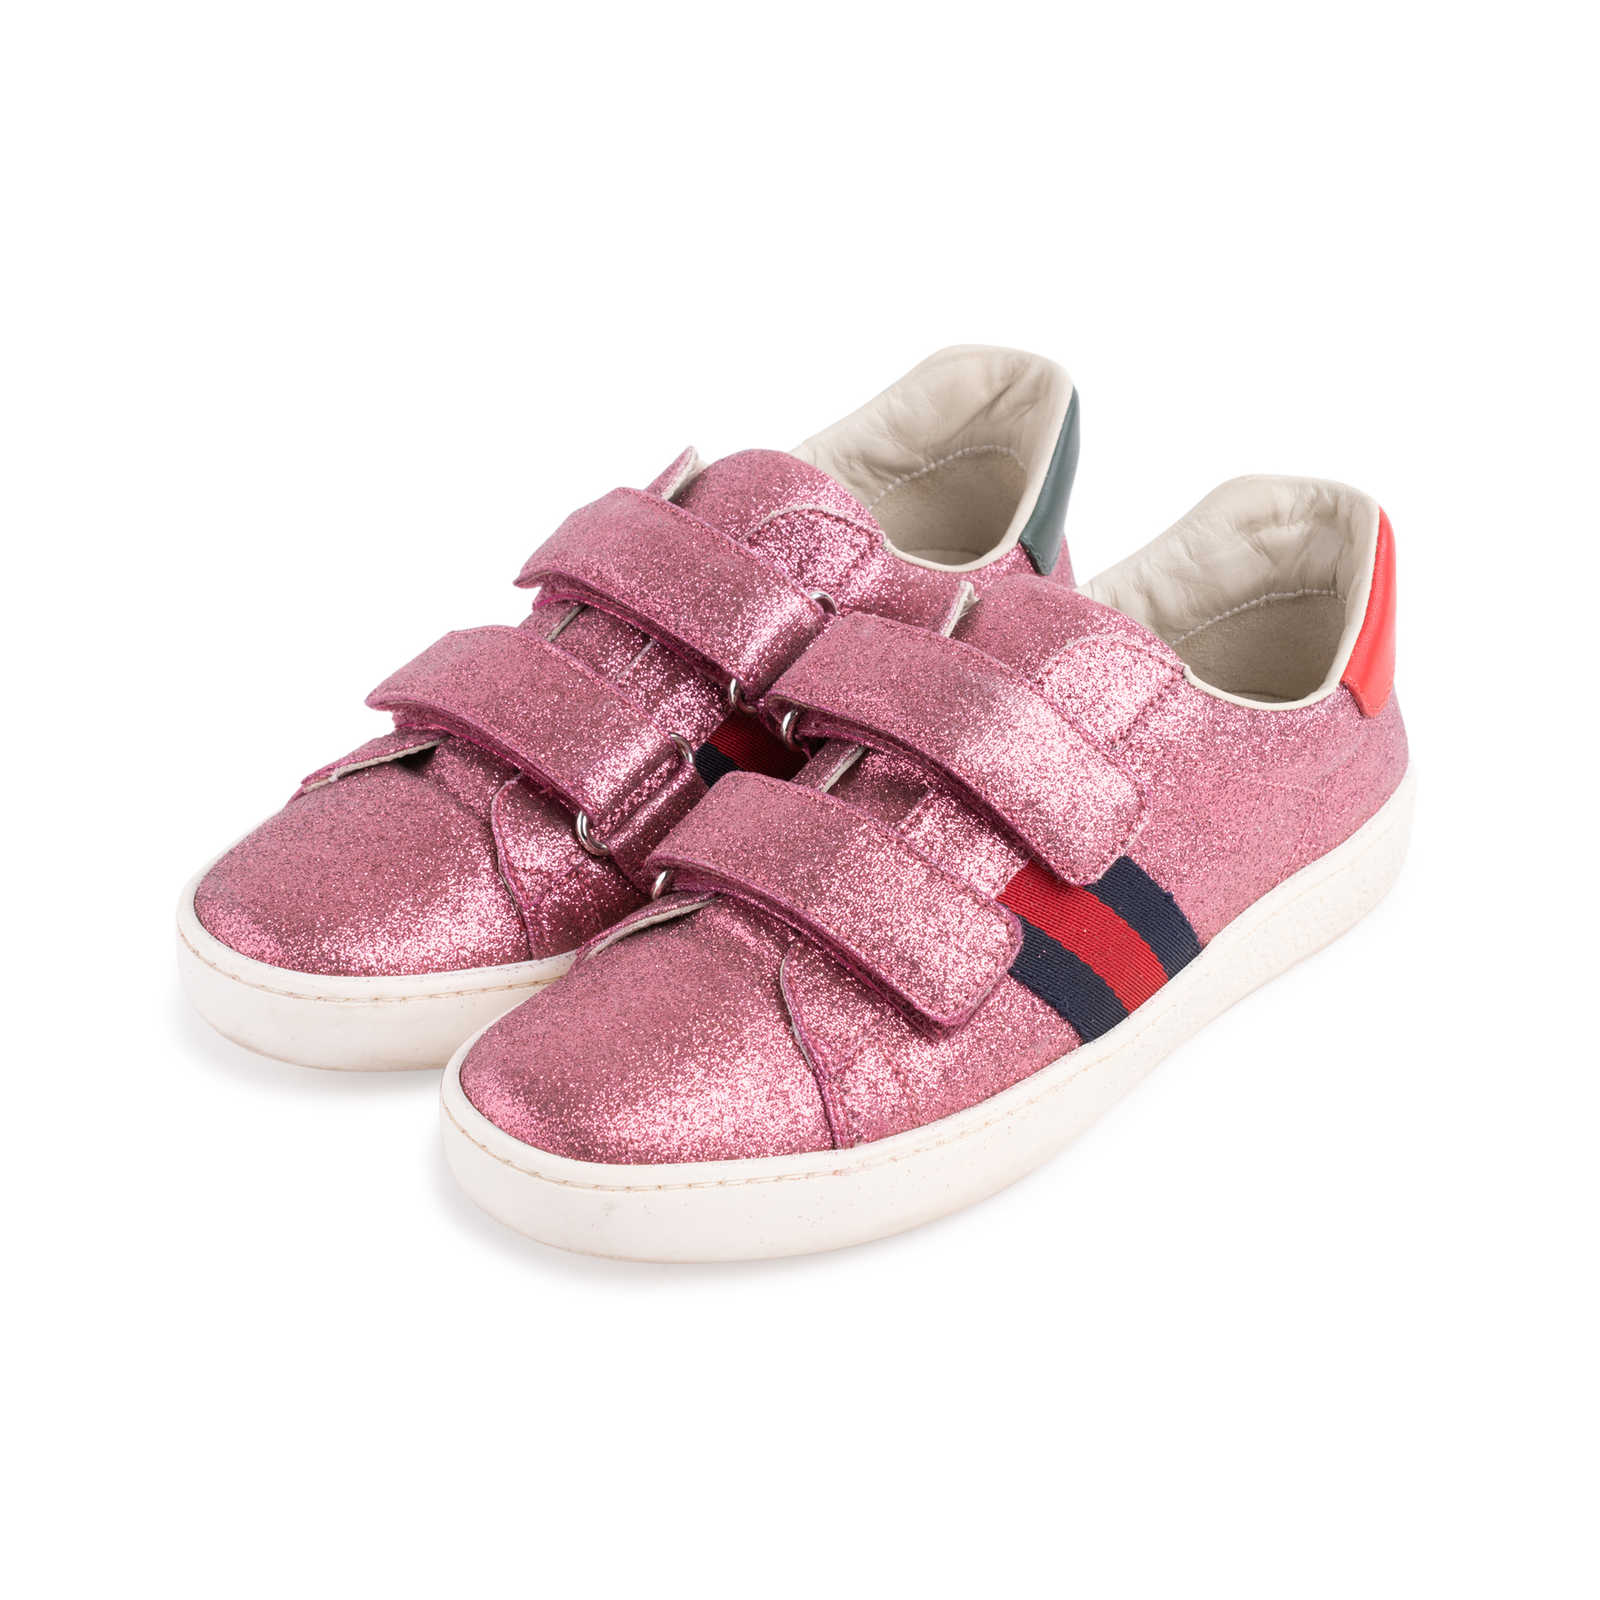 db1e2eb7bba ... Authentic Second Hand Gucci Glitter Ace VL Sneakers (PSS-623-00016) ...